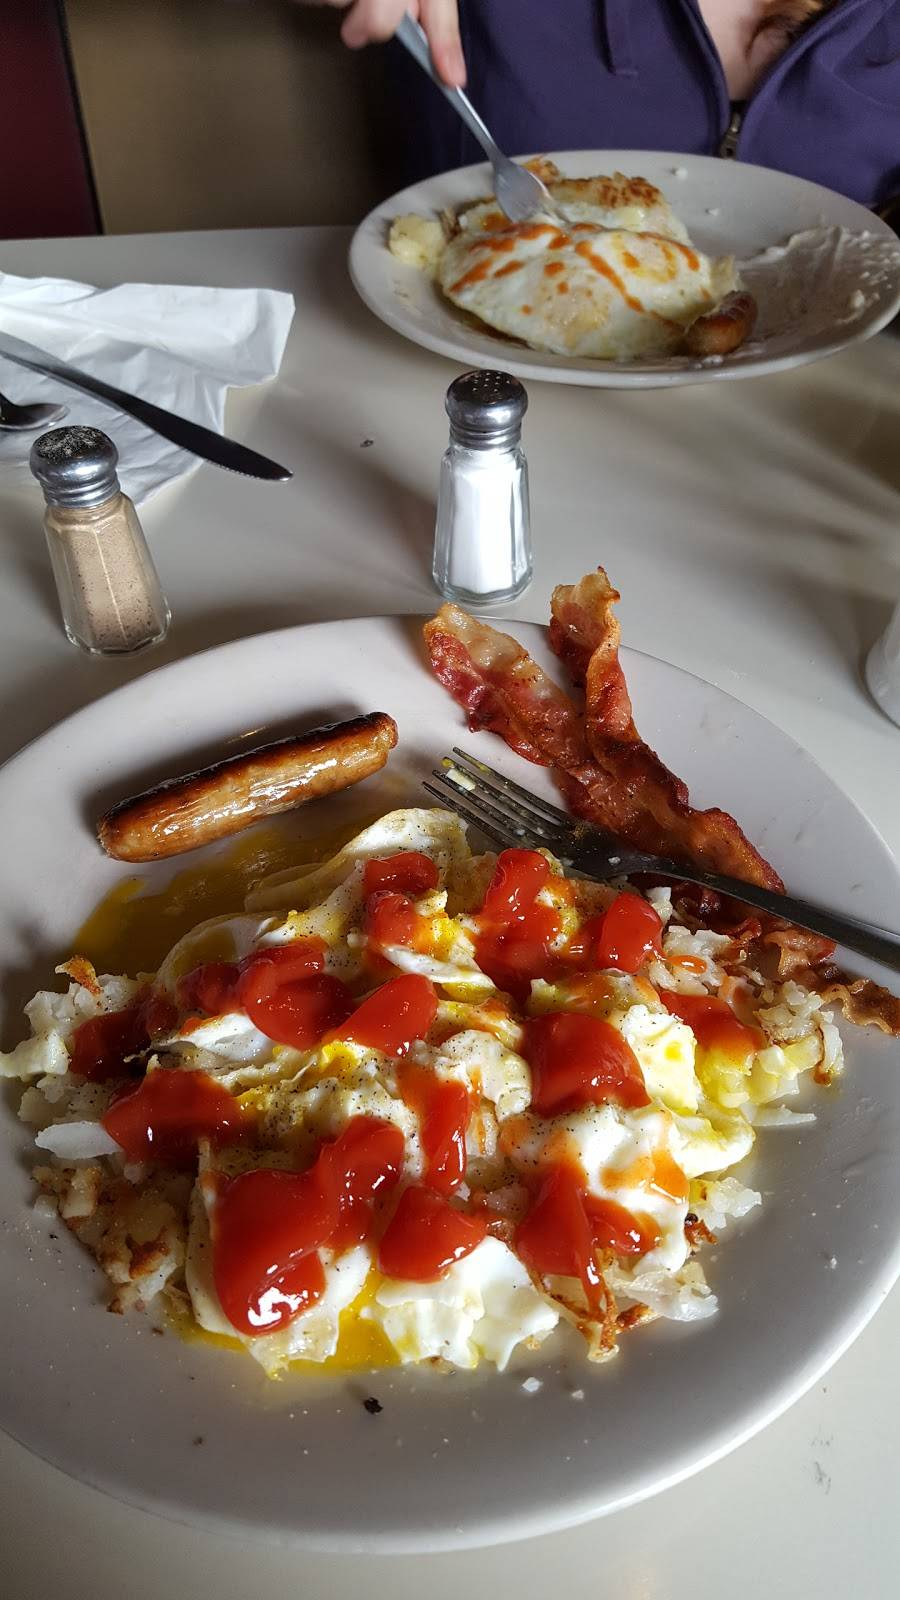 Nicks Diner   restaurant   4116 Lorain Ave, Cleveland, OH 44113, USA   2166317757 OR +1 216-631-7757